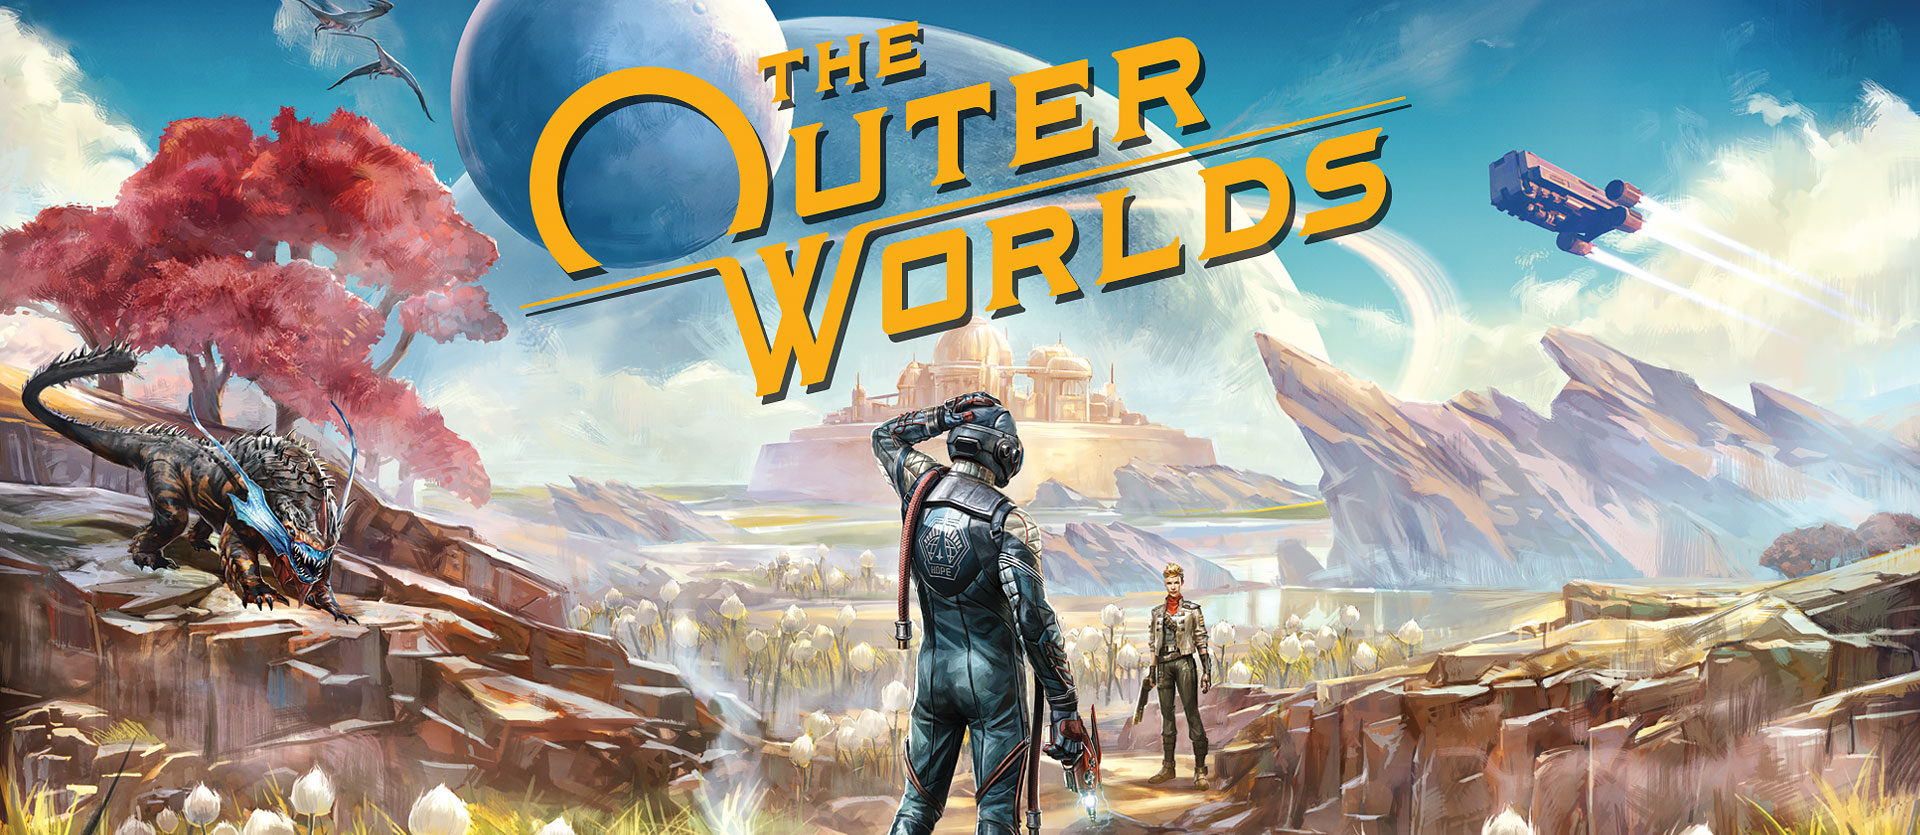 The Outer Worlds, A disoriented traveler looks at a woman in the distance on an alien planet